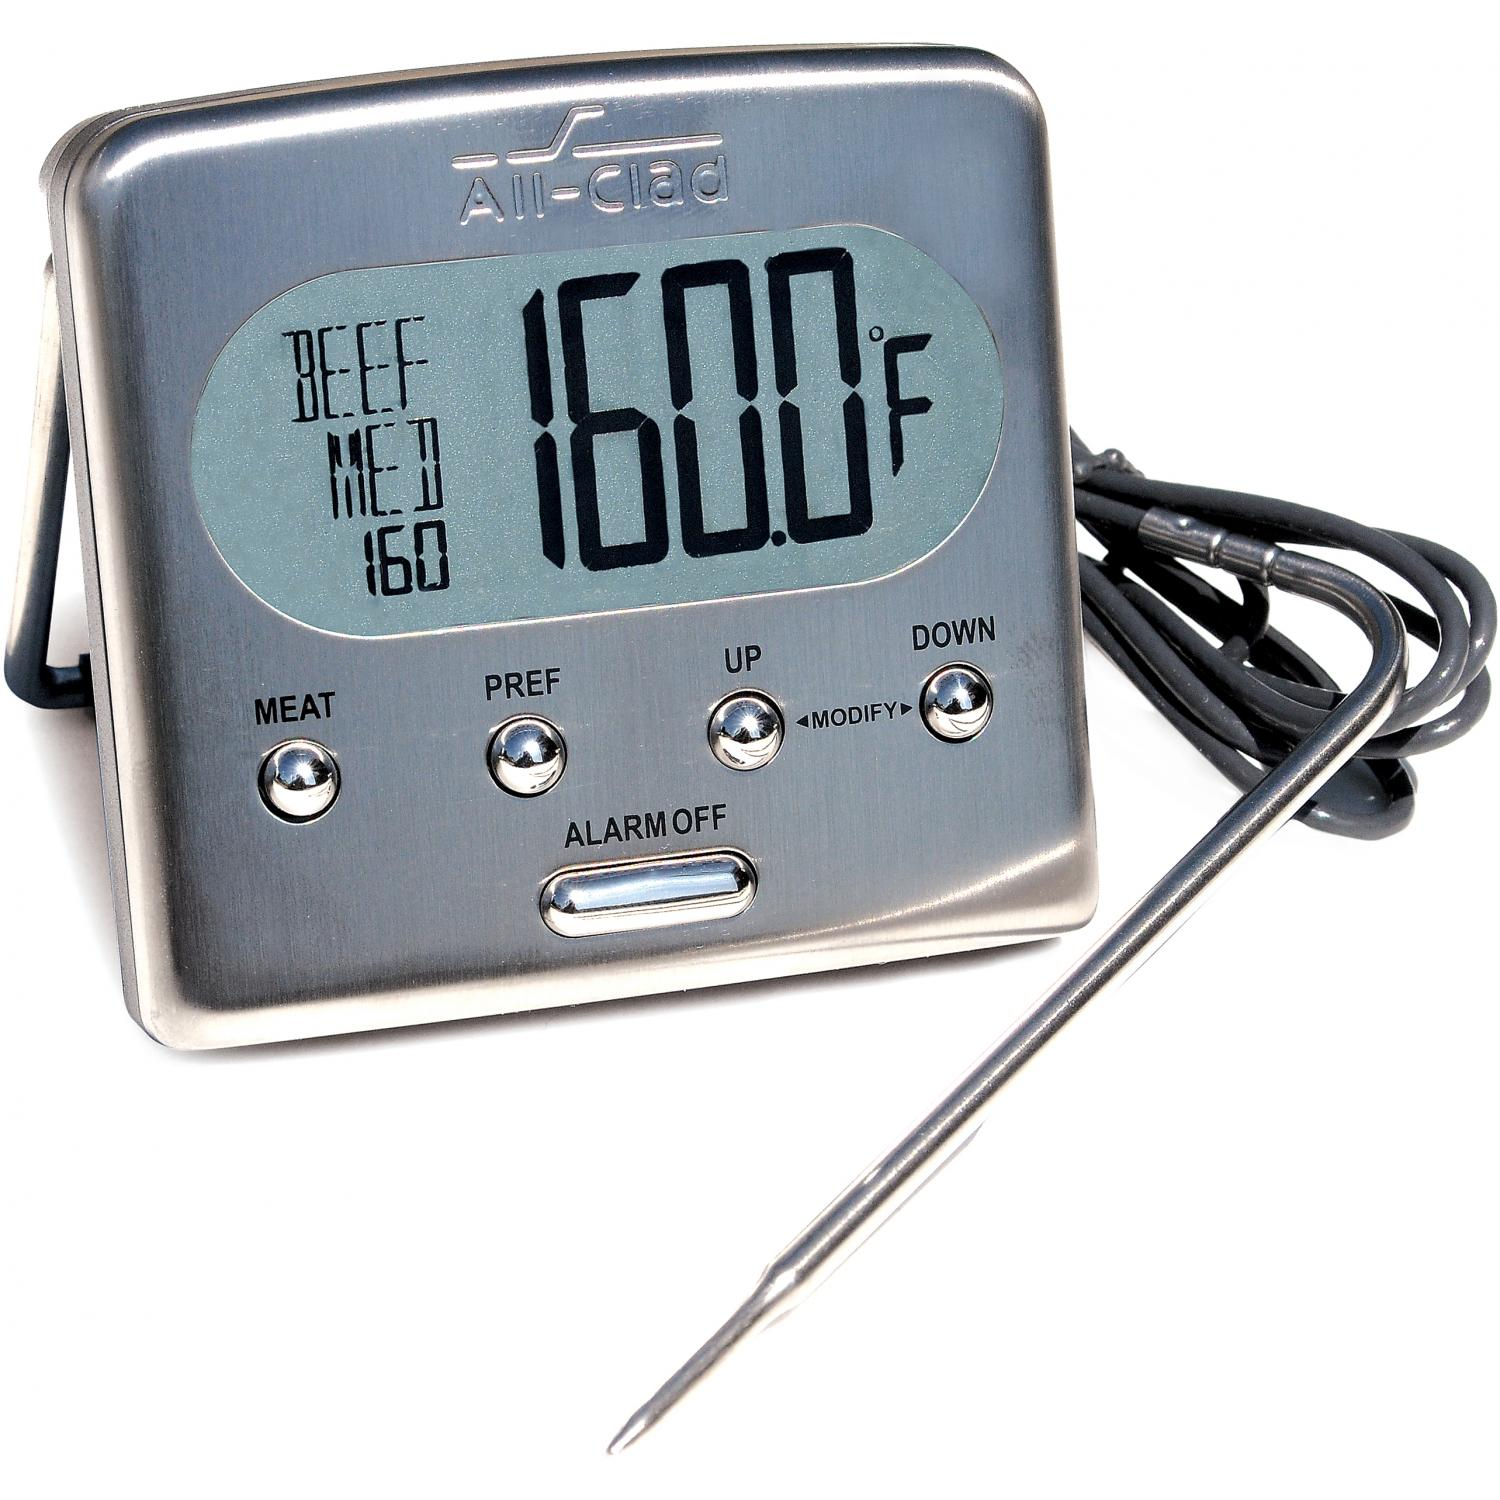 All-Clad Oven Probe Thermometer